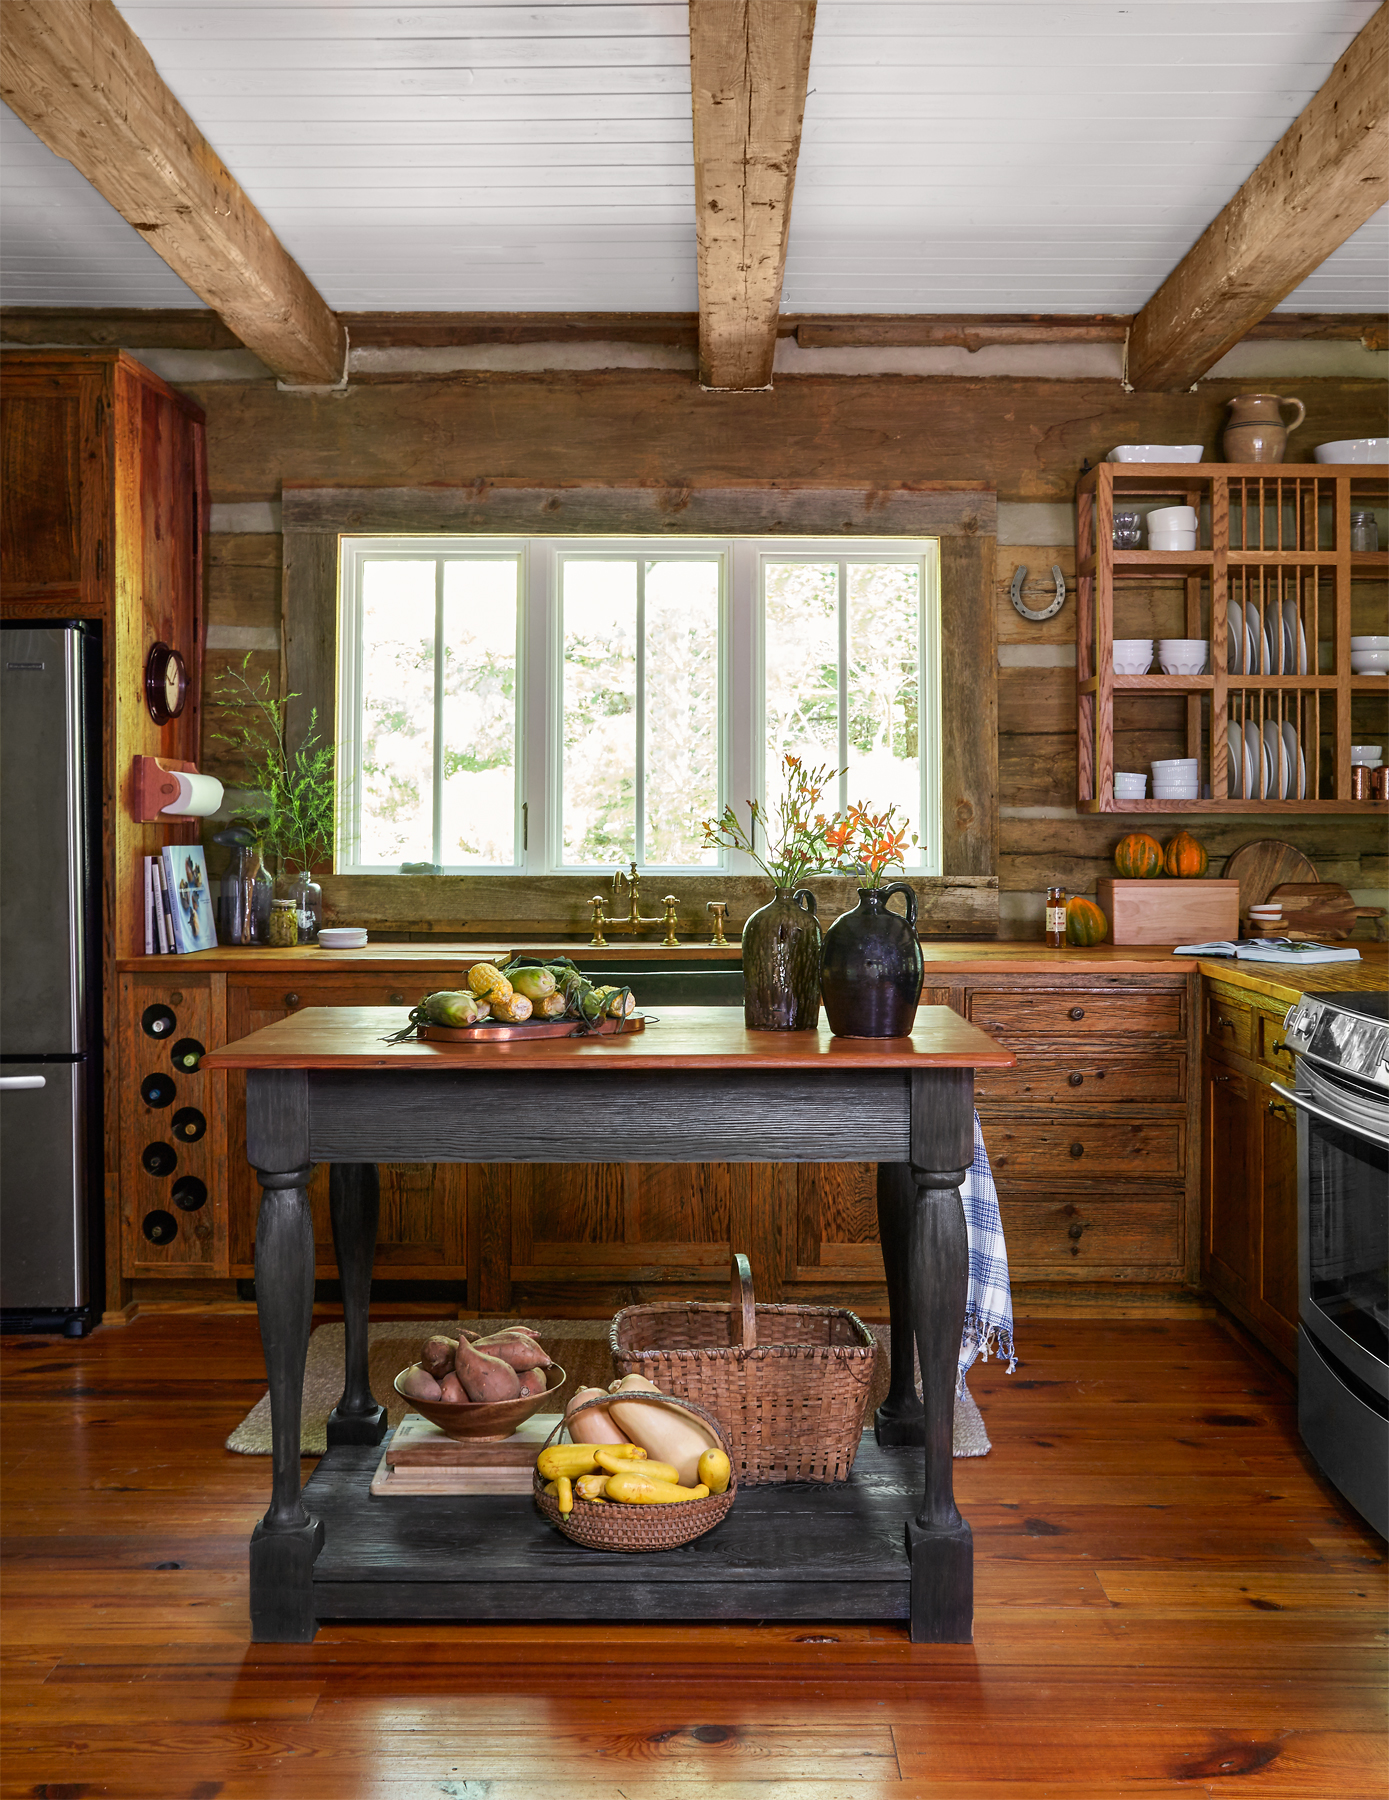 Julie and Jimmy Cash Log Cabin - Tennessee Log Cabin on Rustic:mophcifcrpe= Cottage Kitchen Ideas  id=28963